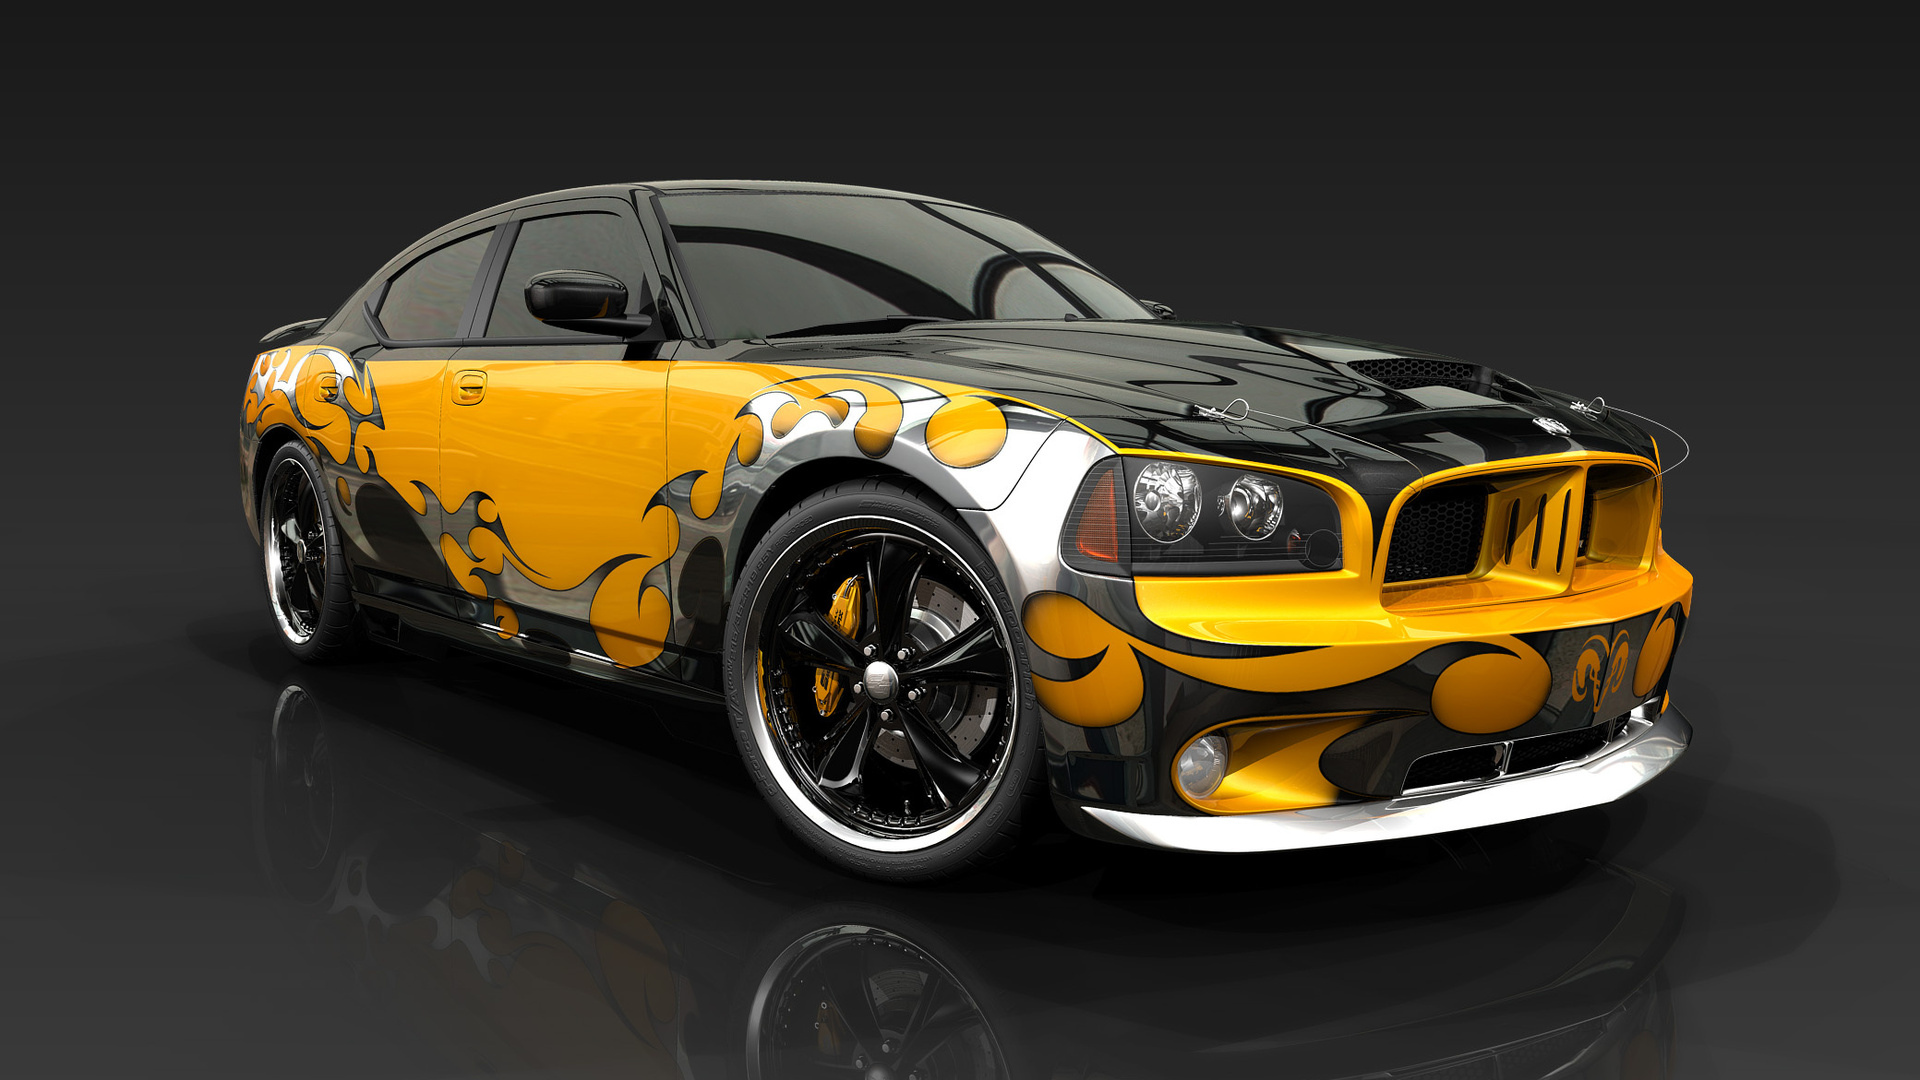 Custom Paint Ideas for Cars